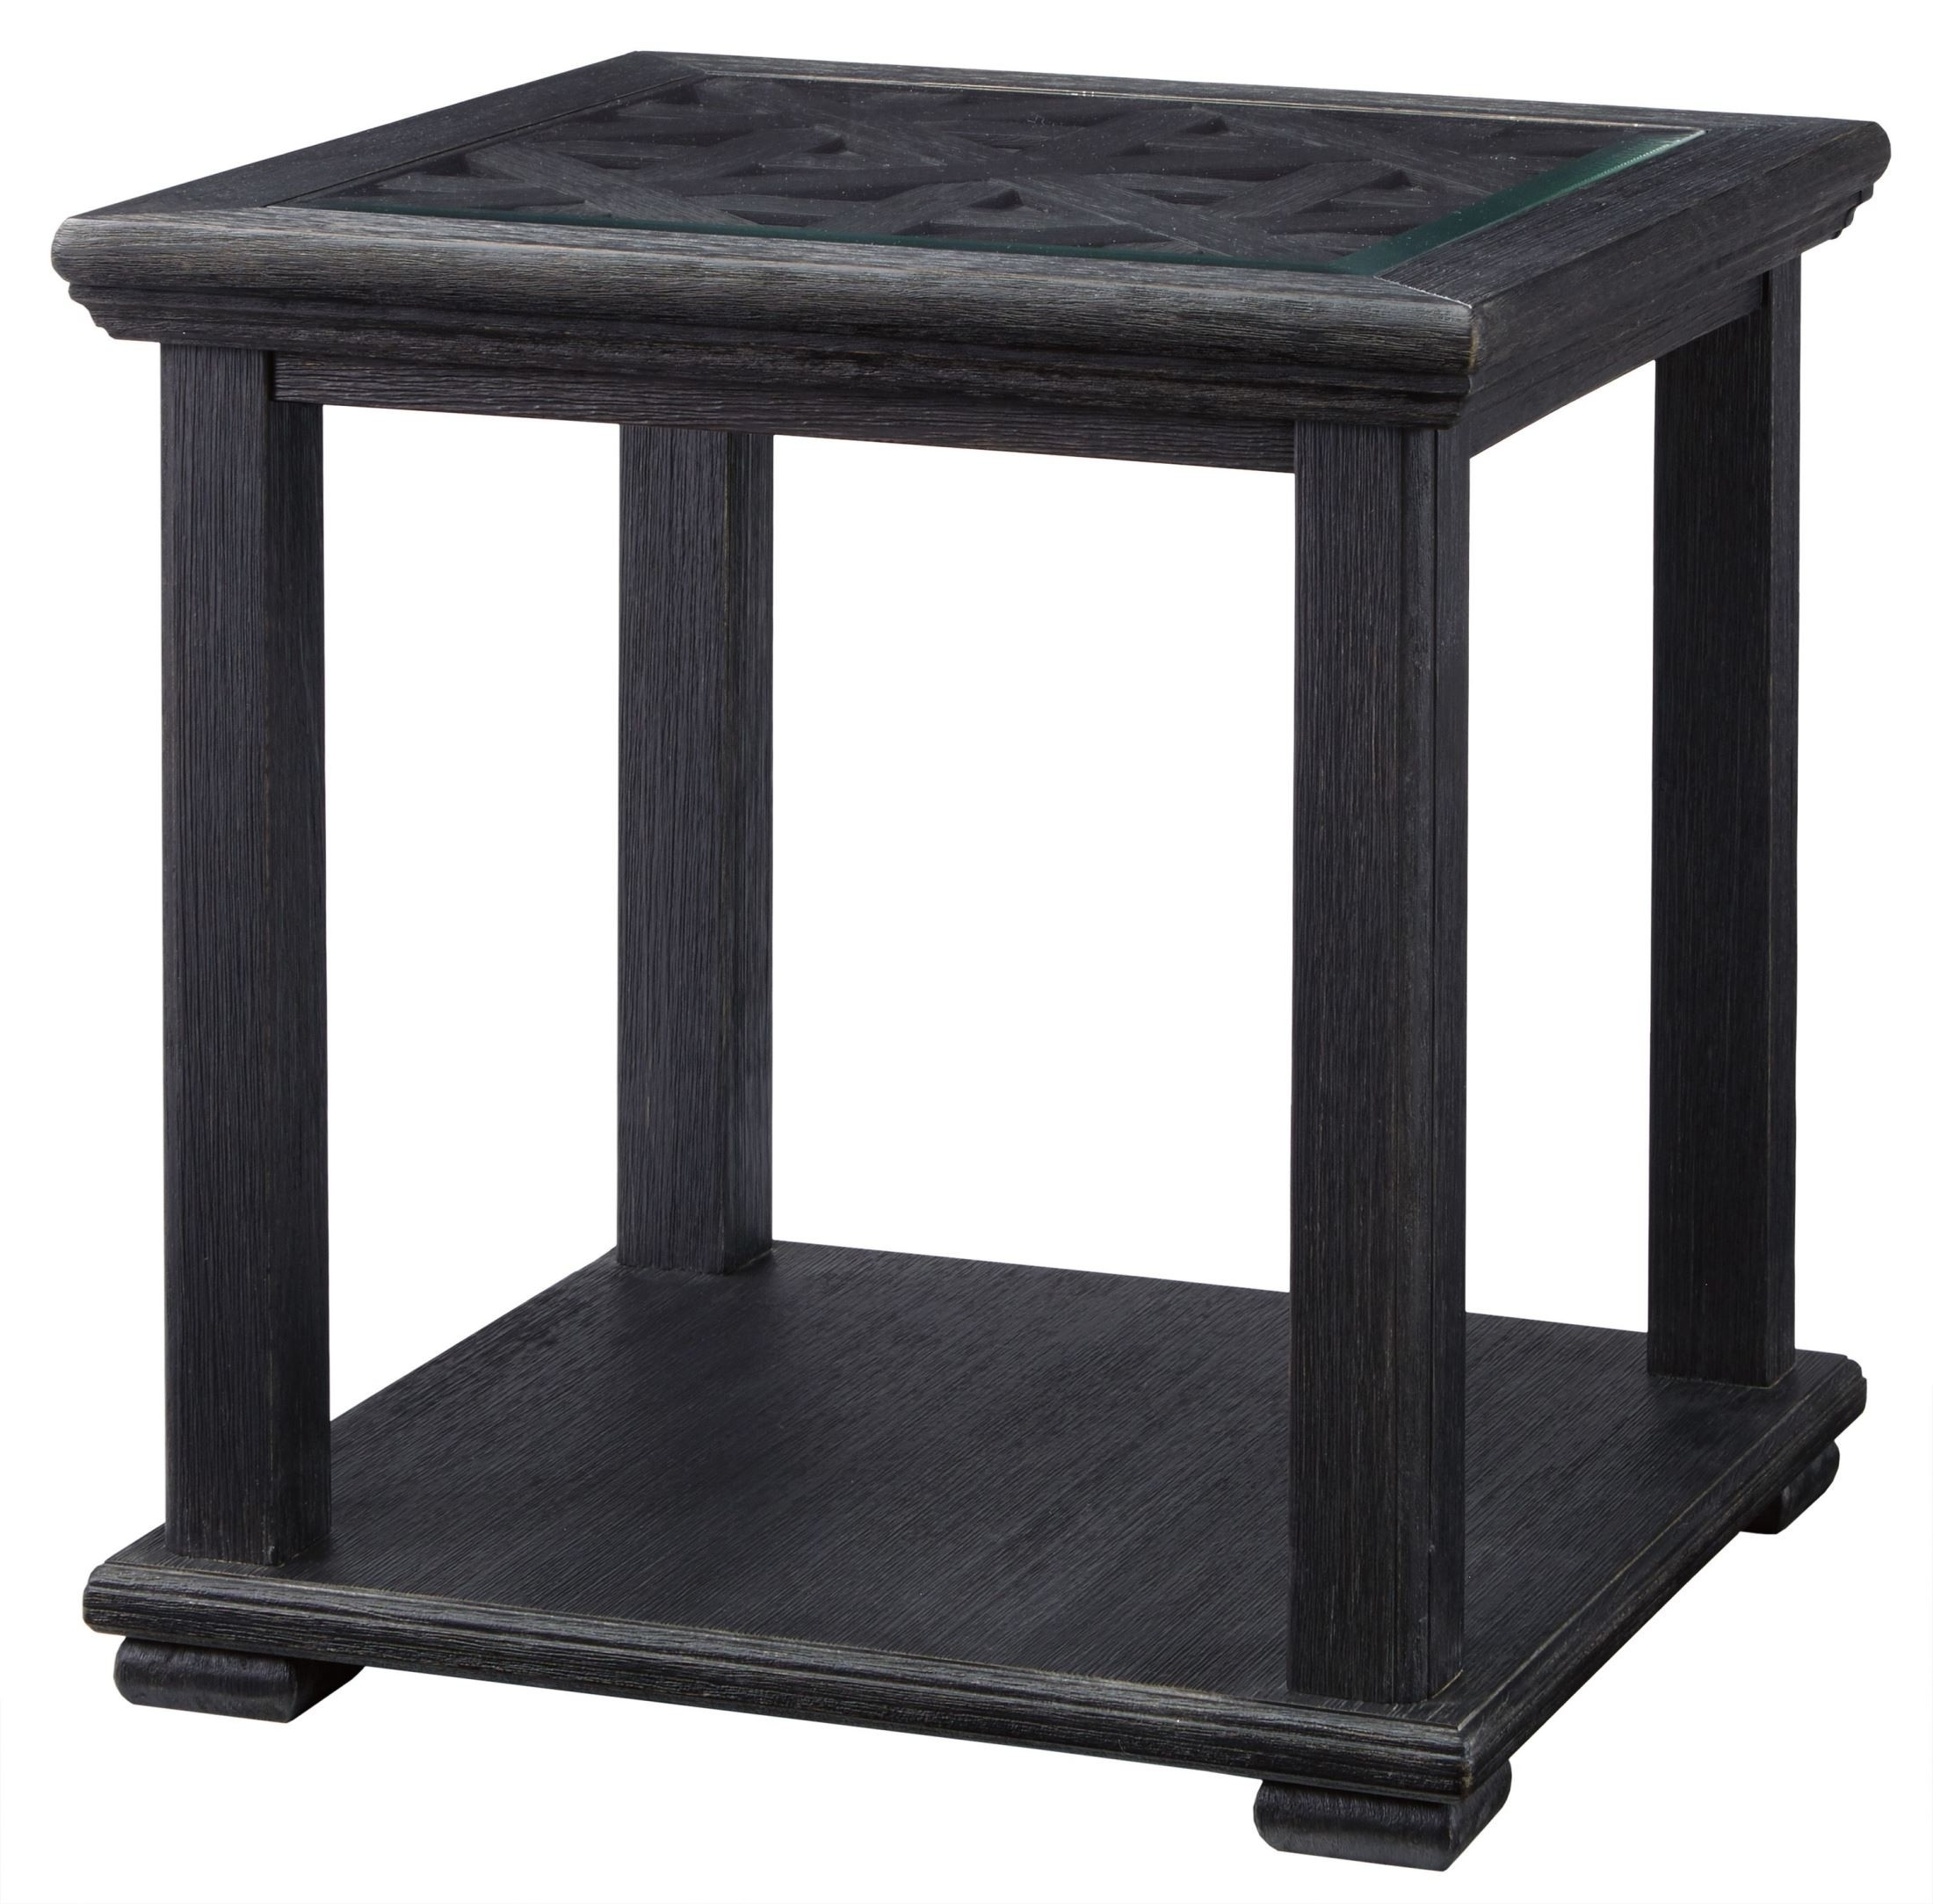 Preferred Carissa Cocktail Tables Intended For Signature Designashley Tyler Creek Black Square End Table (View 14 of 20)